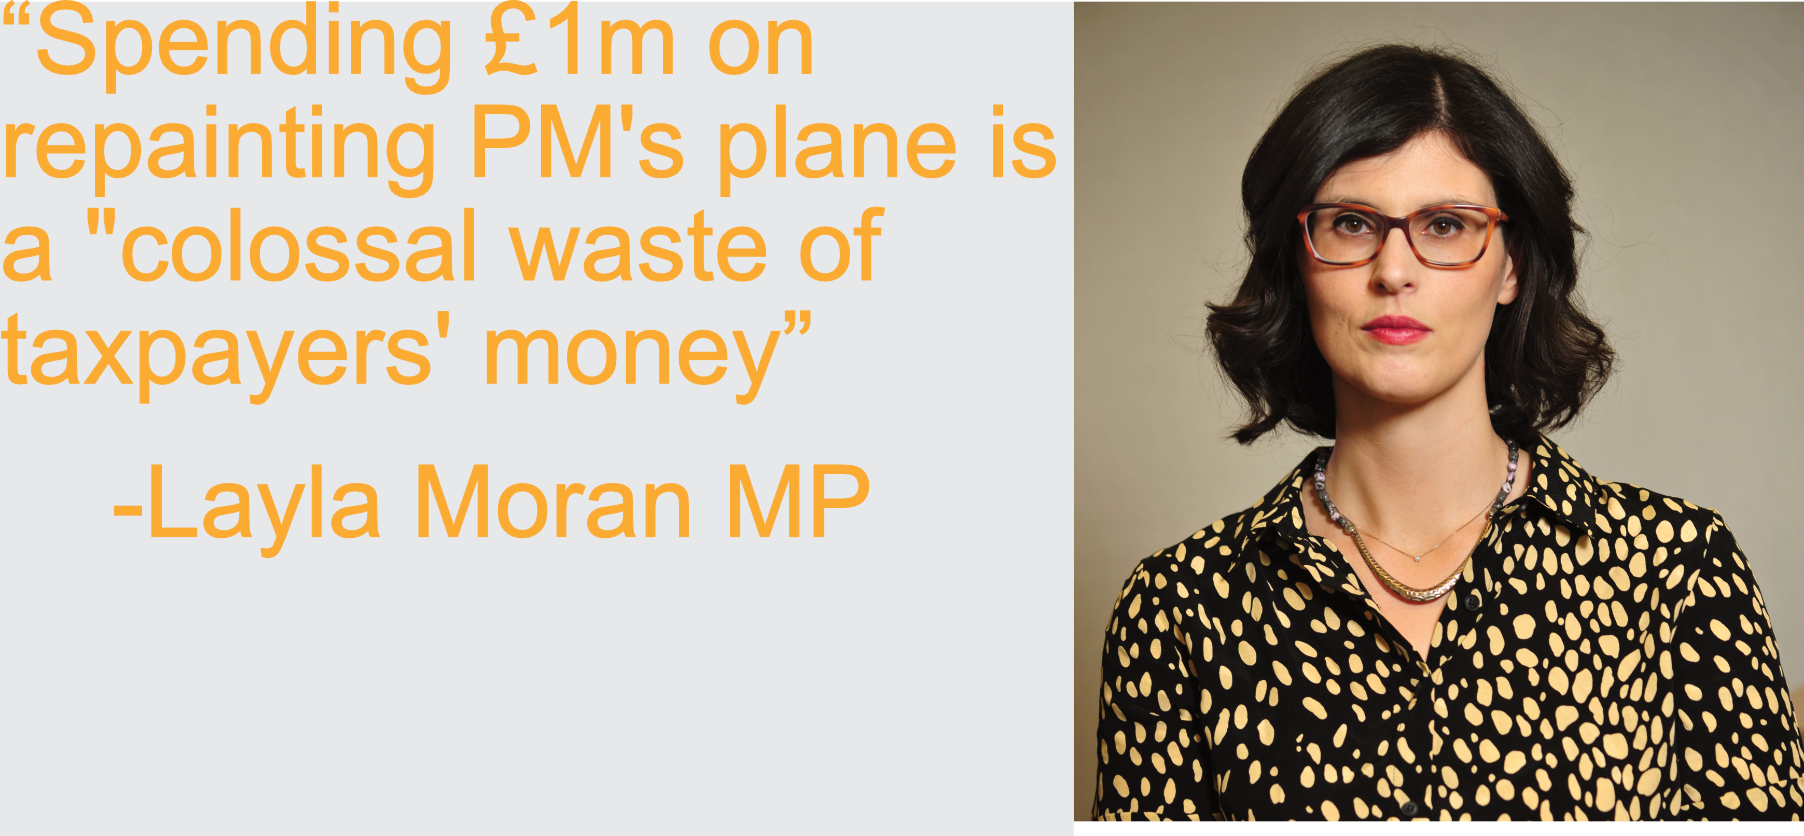 "Spending £1m on repainting PM's plane is a ""colossal waste of taxpayers' money'"